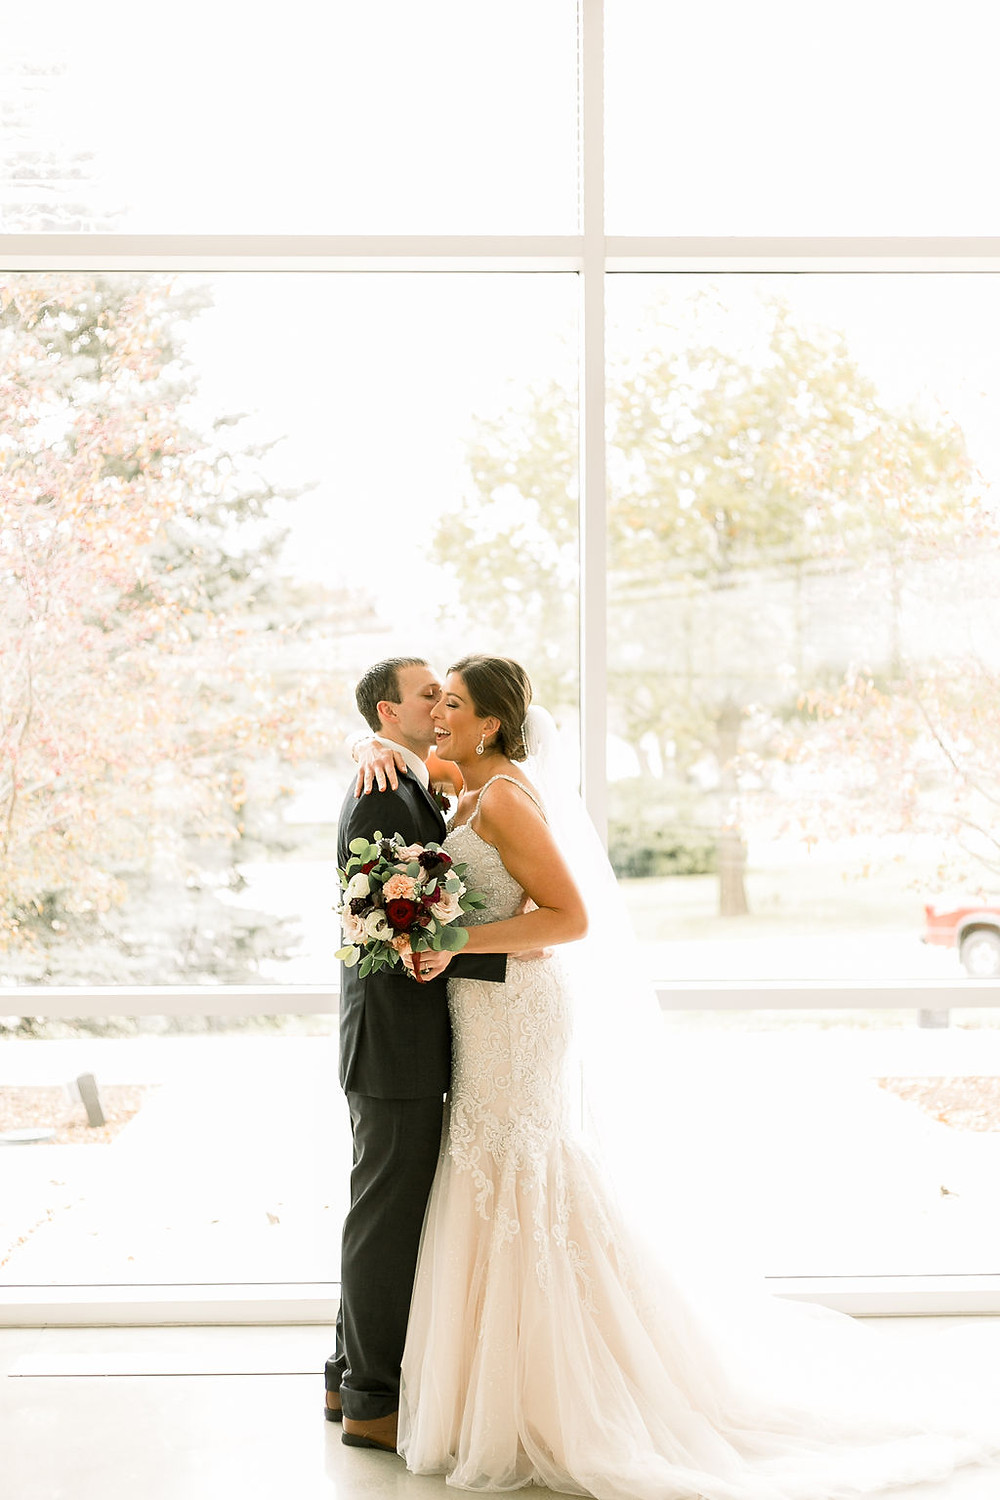 Bride and groom hugging during first look in front of windows holding bridal bouquet in burgundy and white by Studio Bloom Iowa